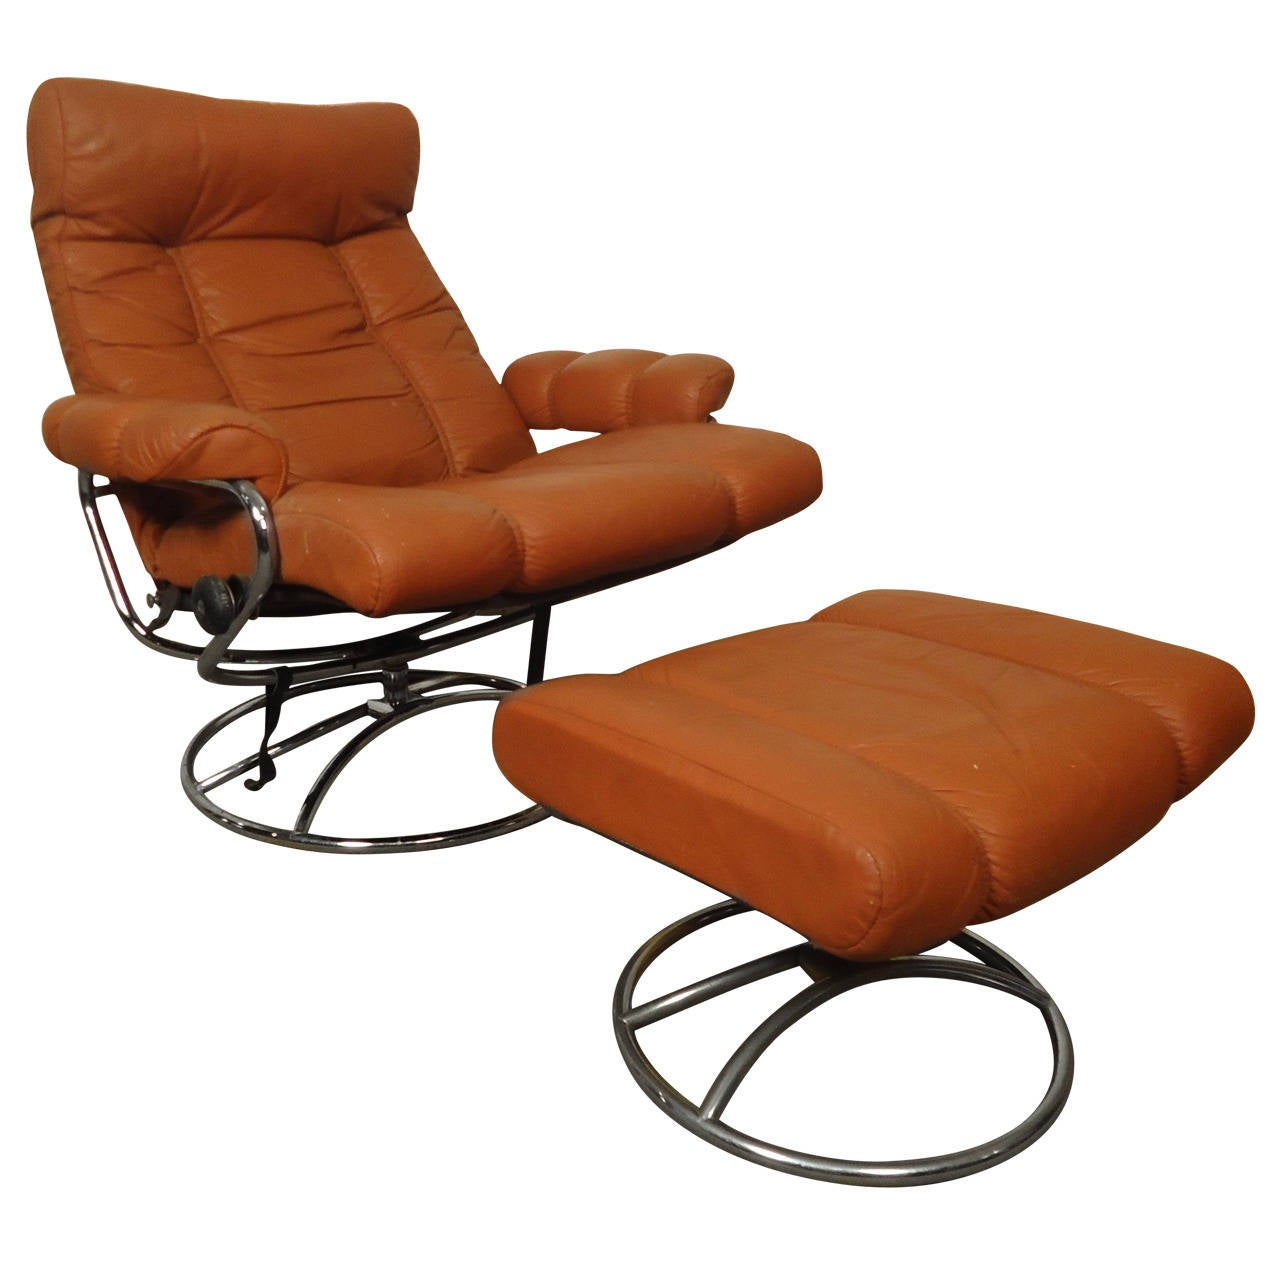 Mid-Century Reclining Chair and Ottoman by Ekornes Stressless 1  sc 1 st  1stDibs & Mid-Century Reclining Chair and Ottoman by Ekornes Stressless For ... islam-shia.org